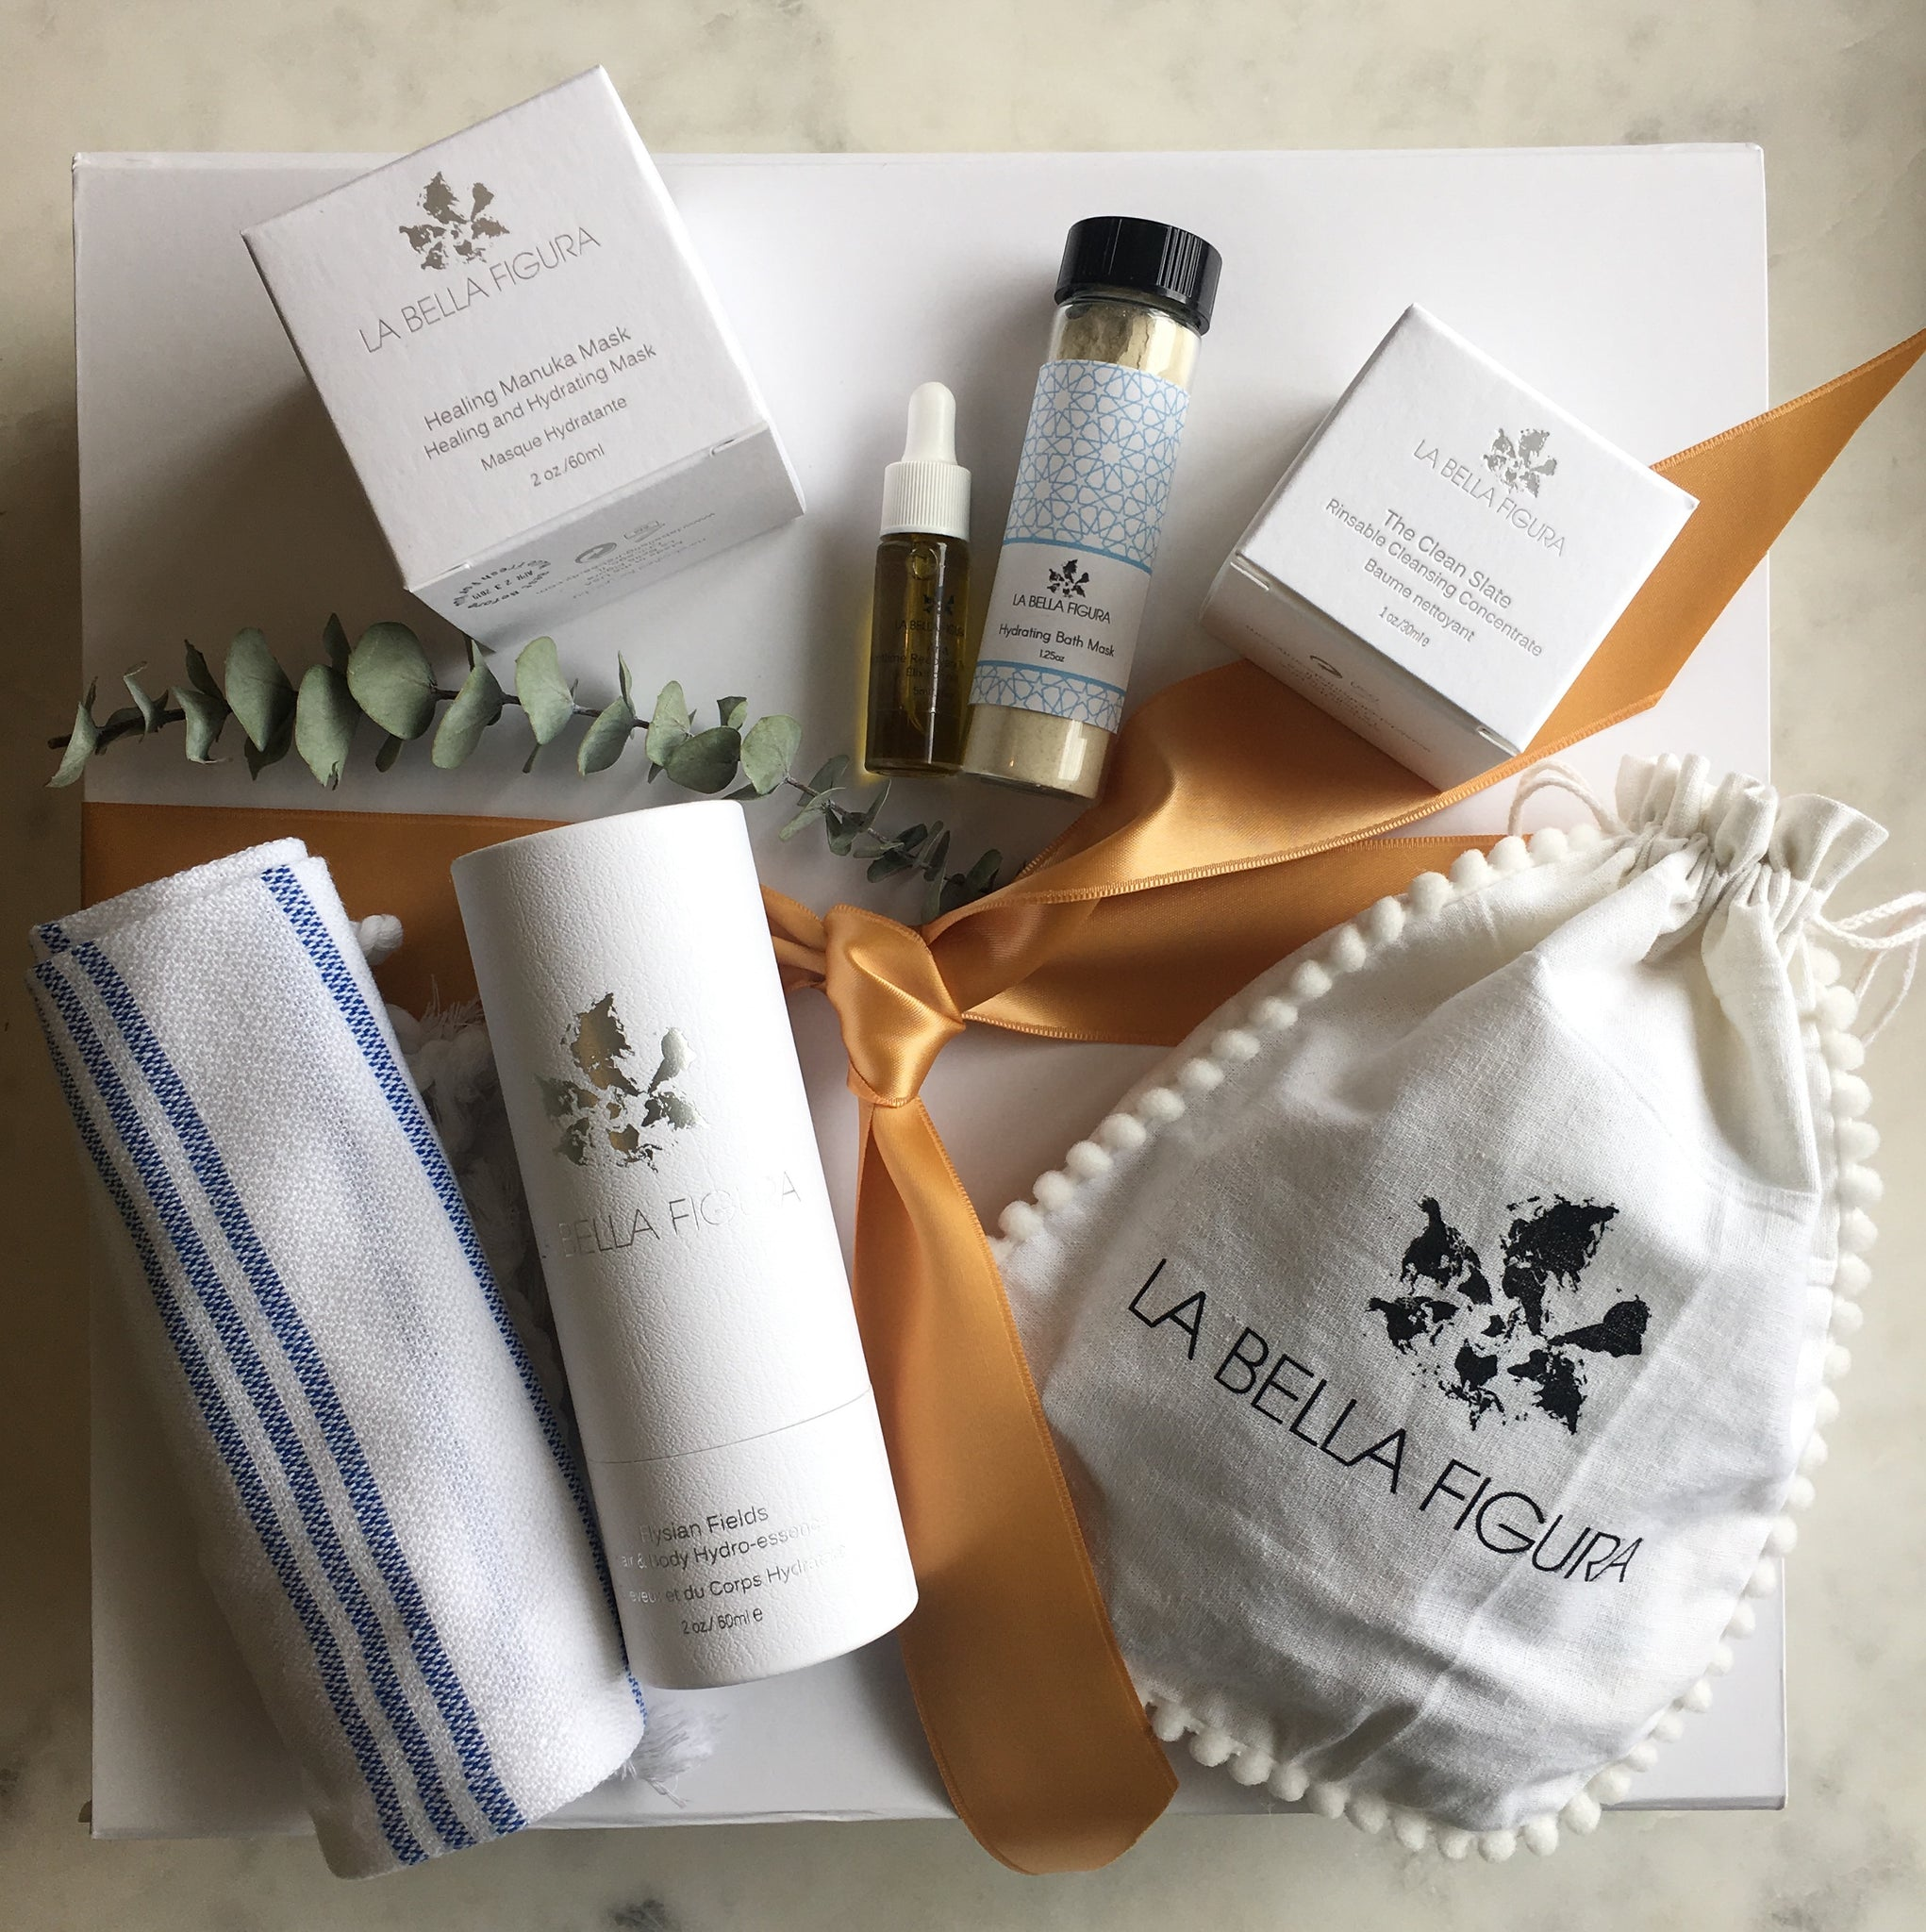 Evening Ritual and Bath Set - La Bella Figura Beauty